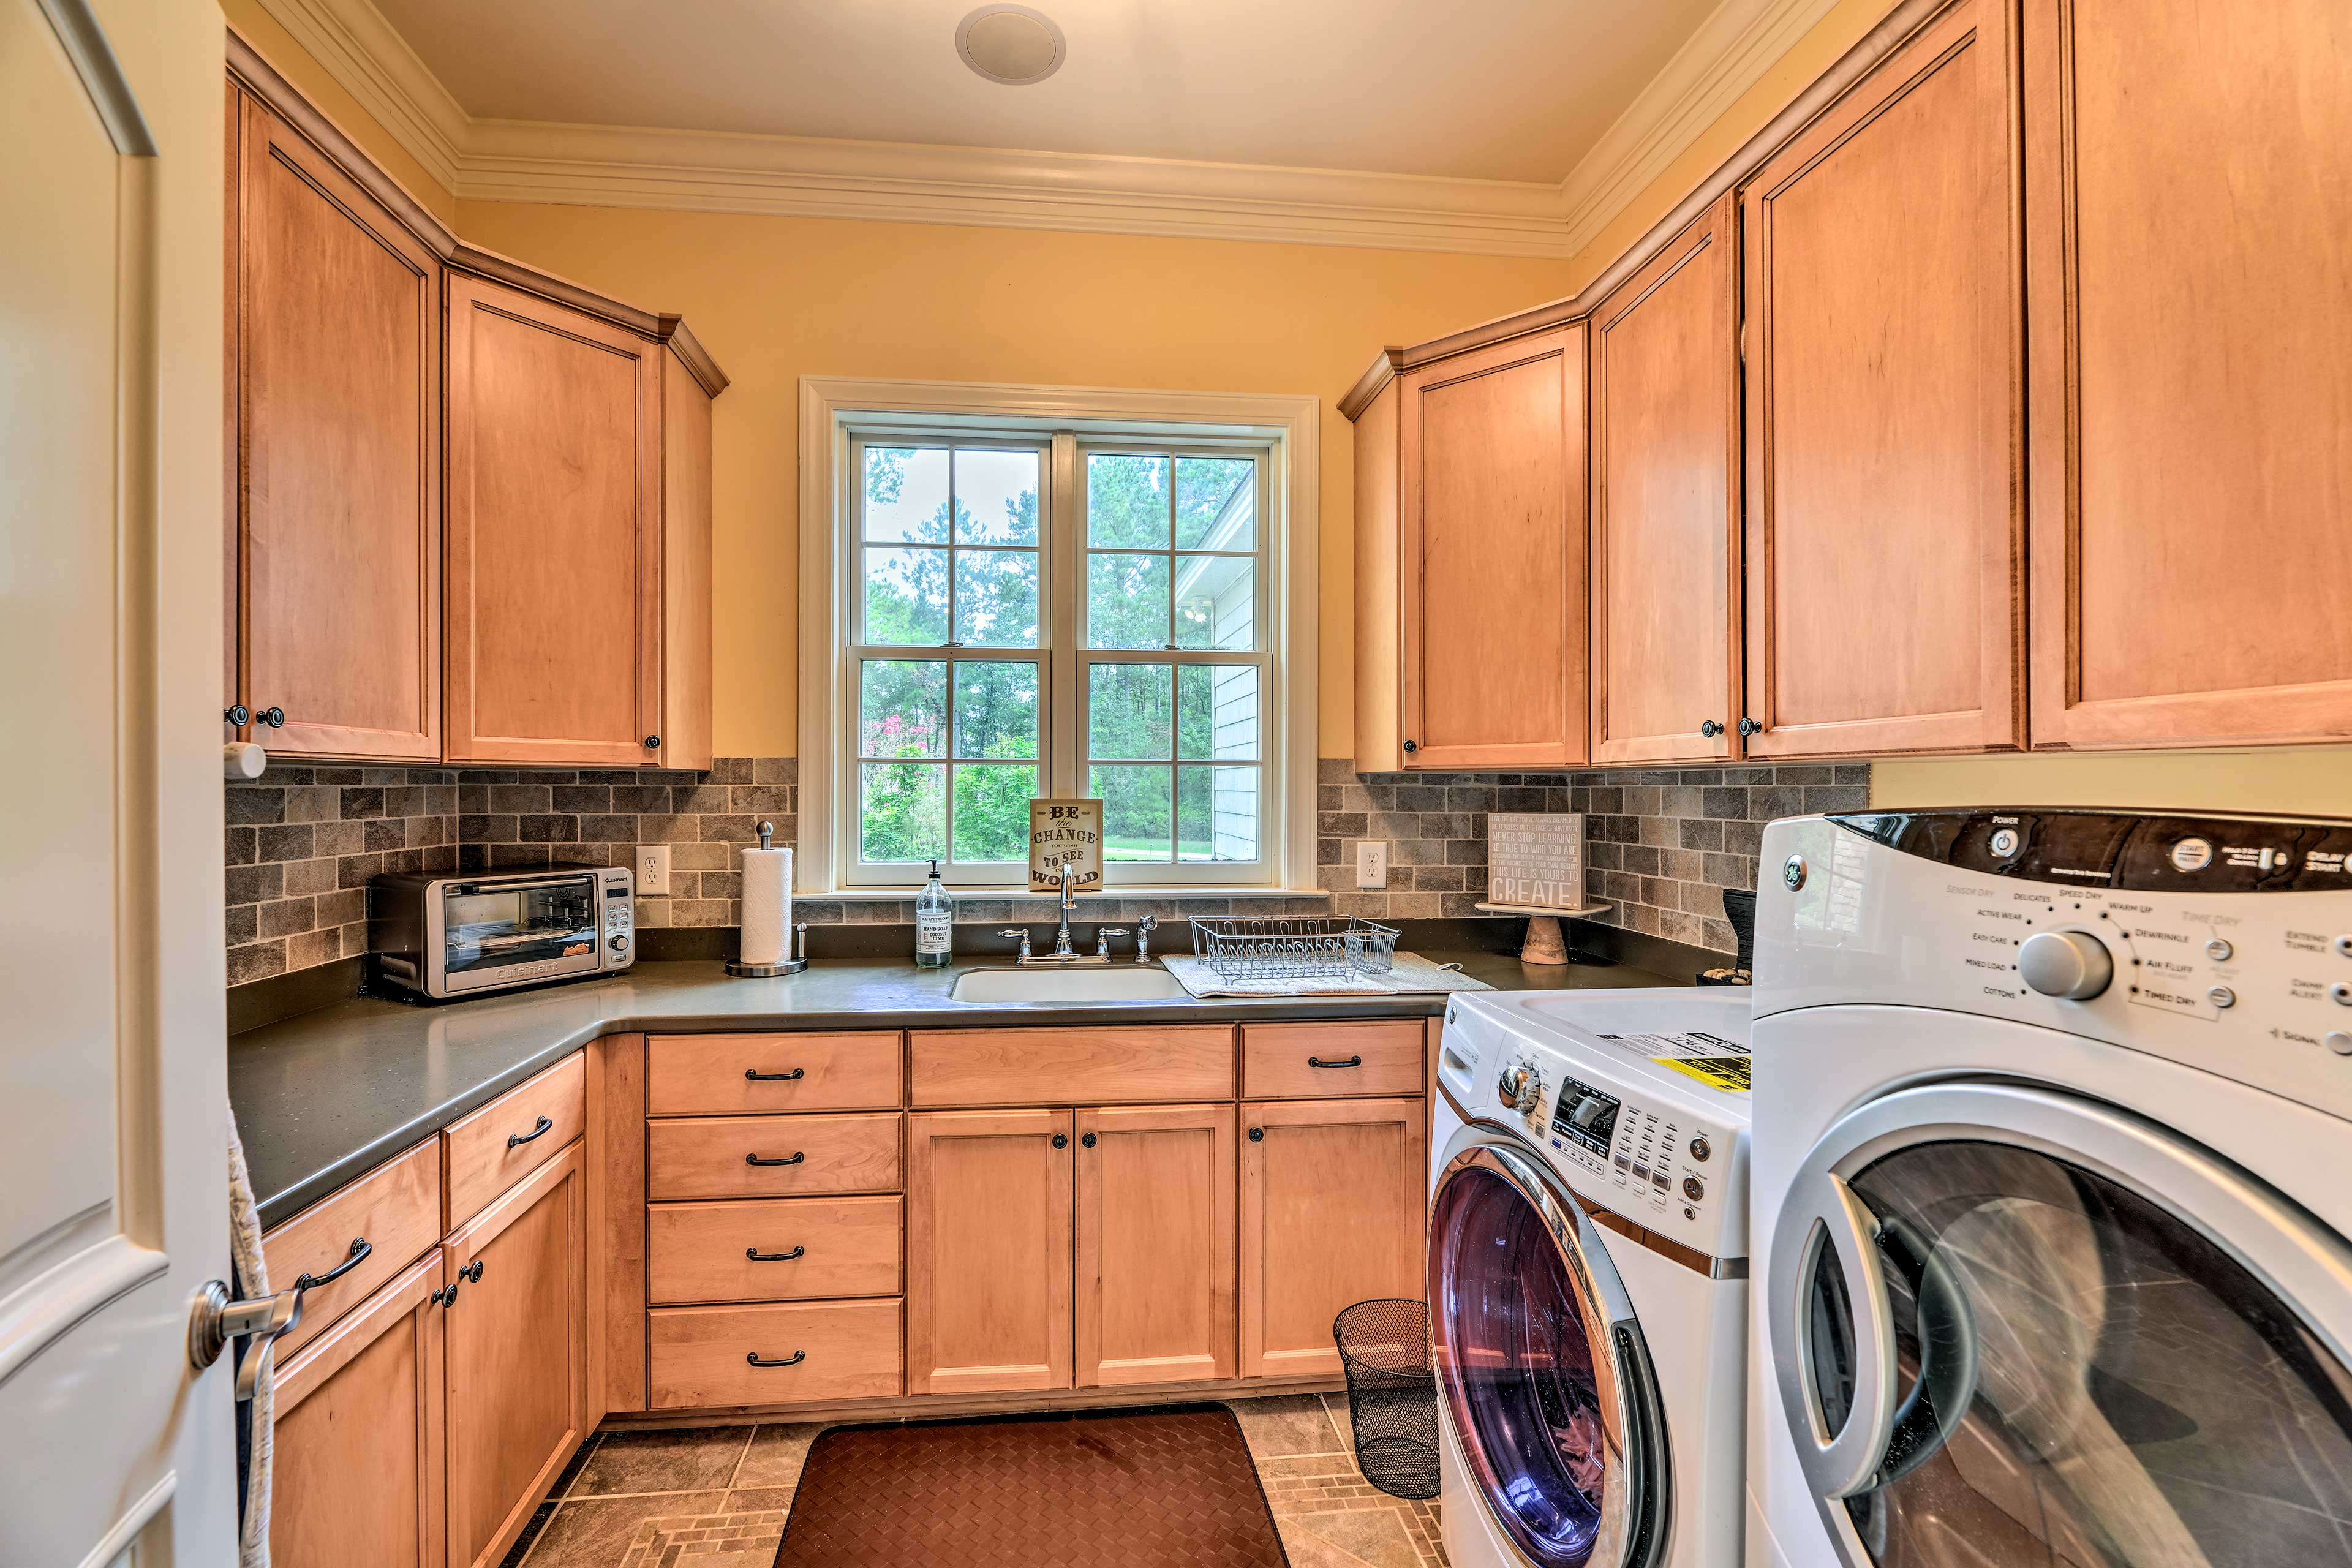 The laundry room has additional storage, a sink, and toaster oven.